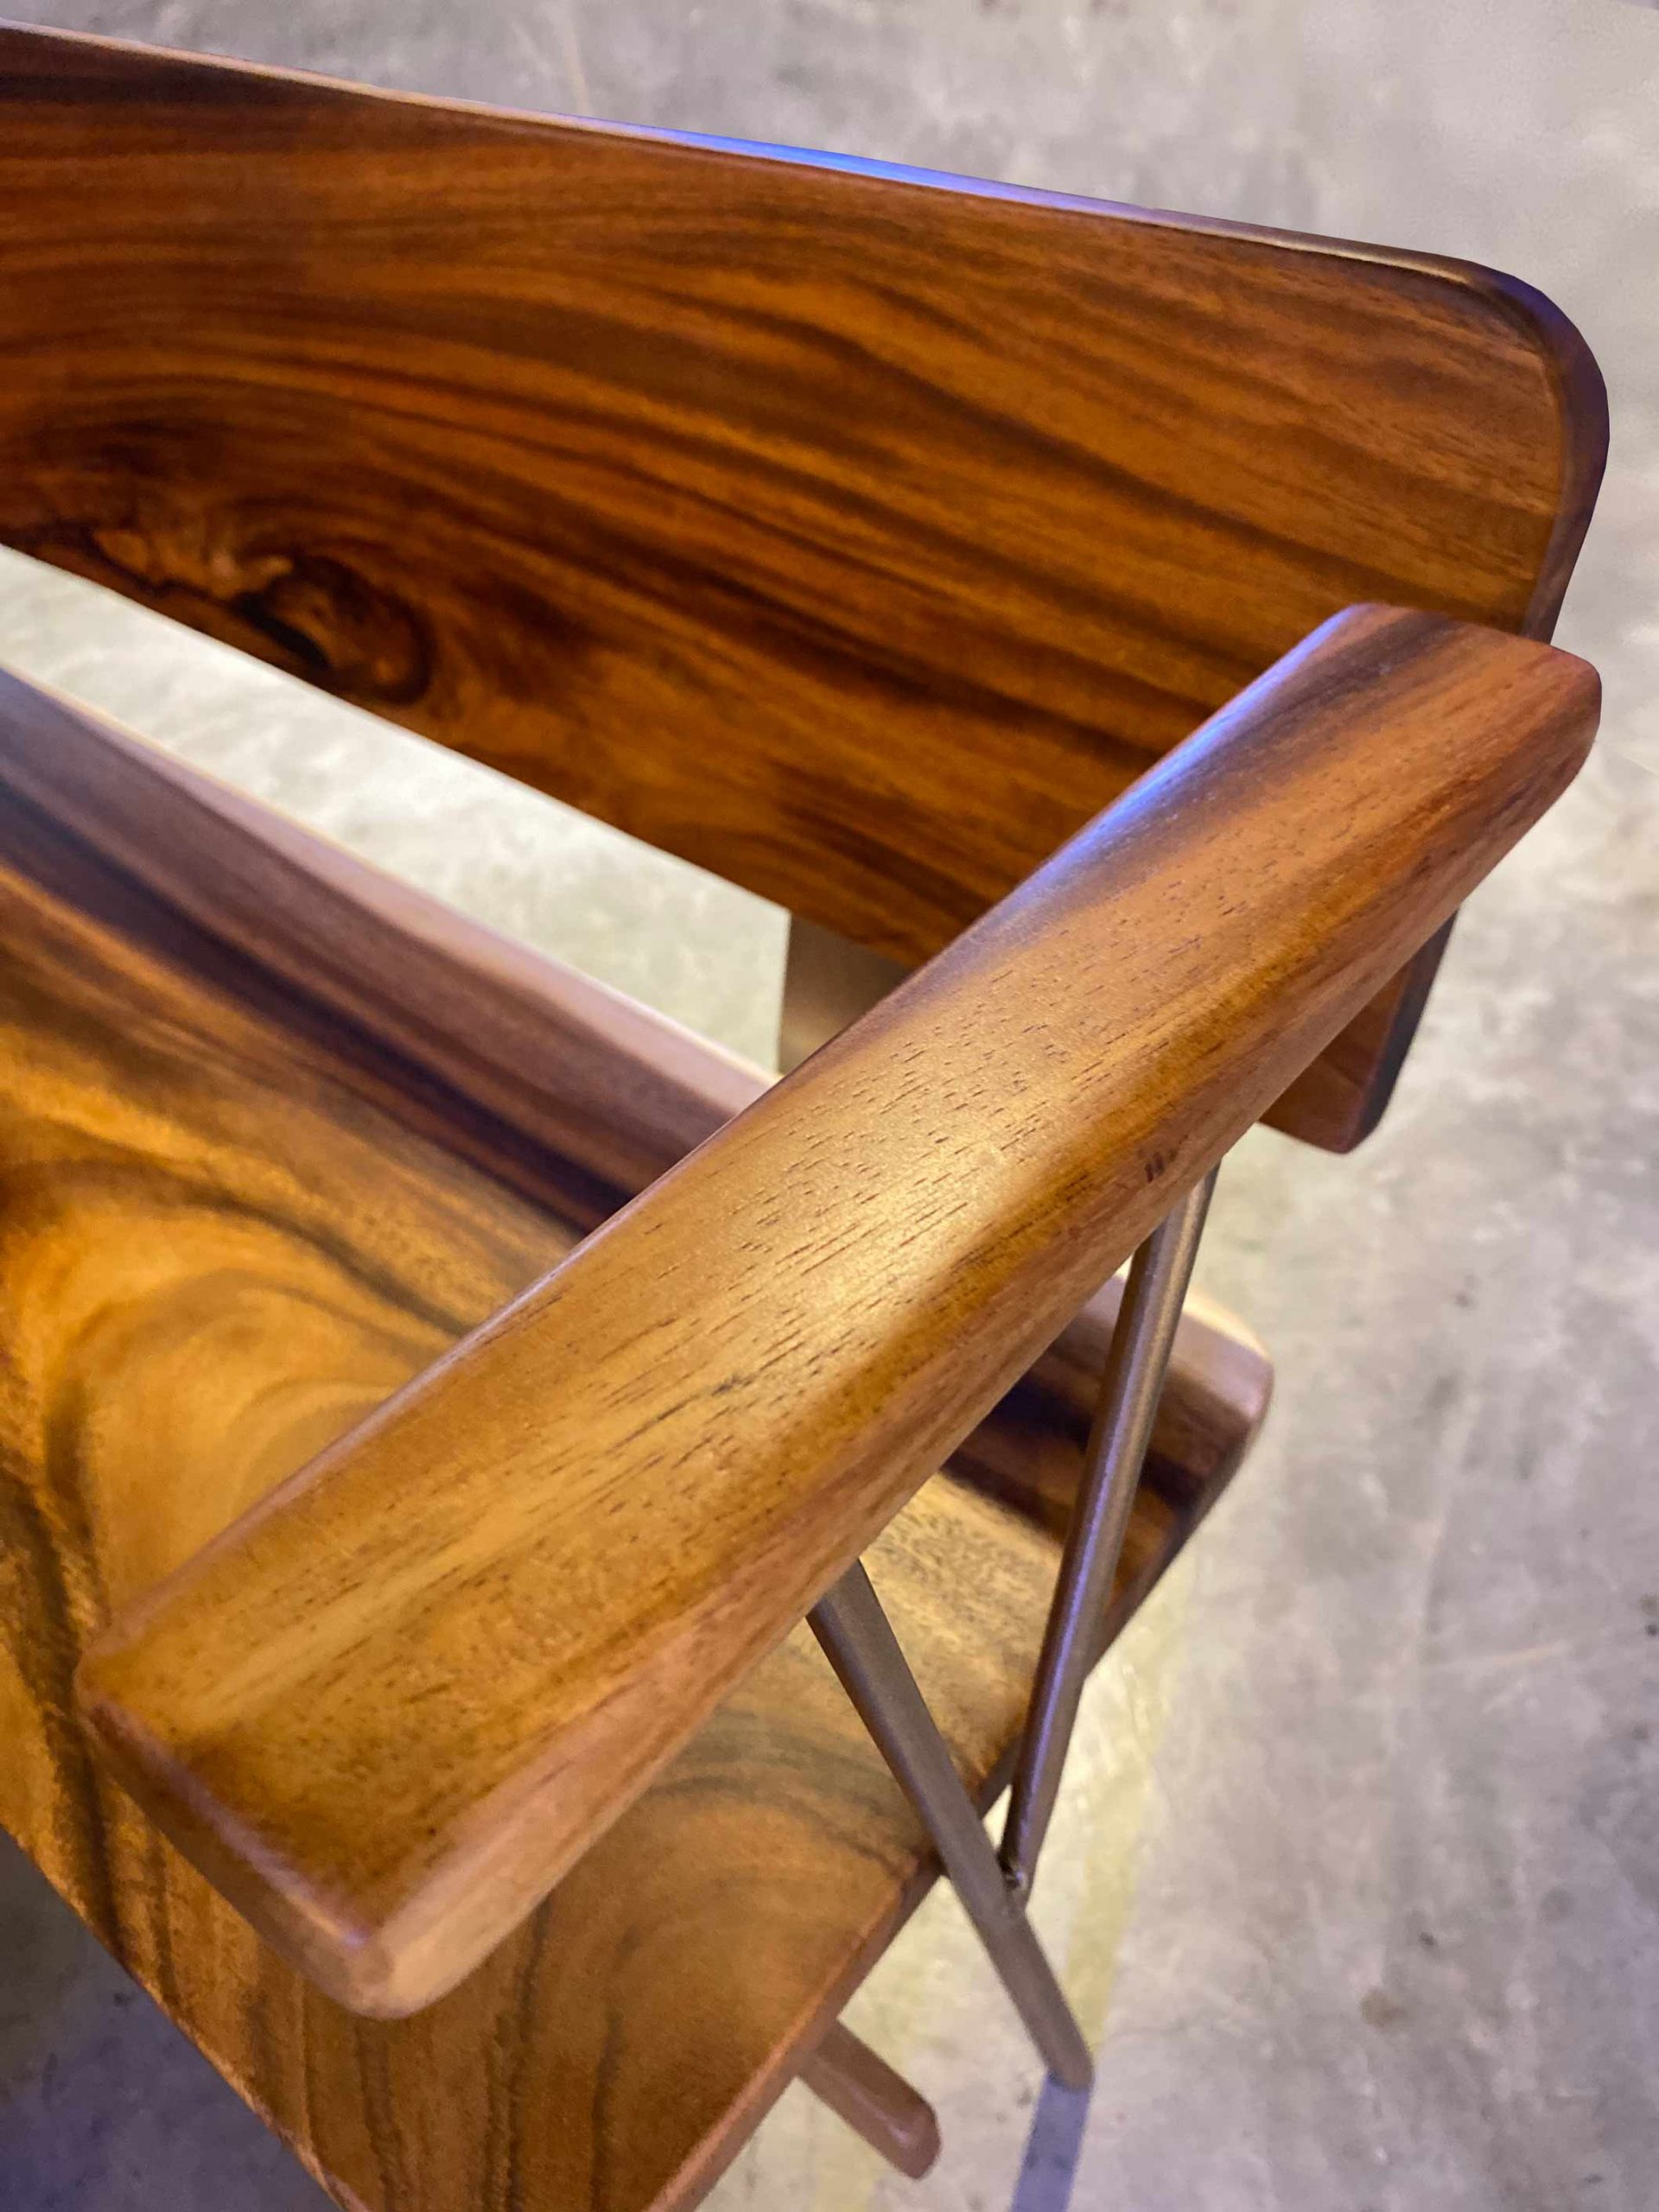 Handcrafted Furniture Singapore Bench Details